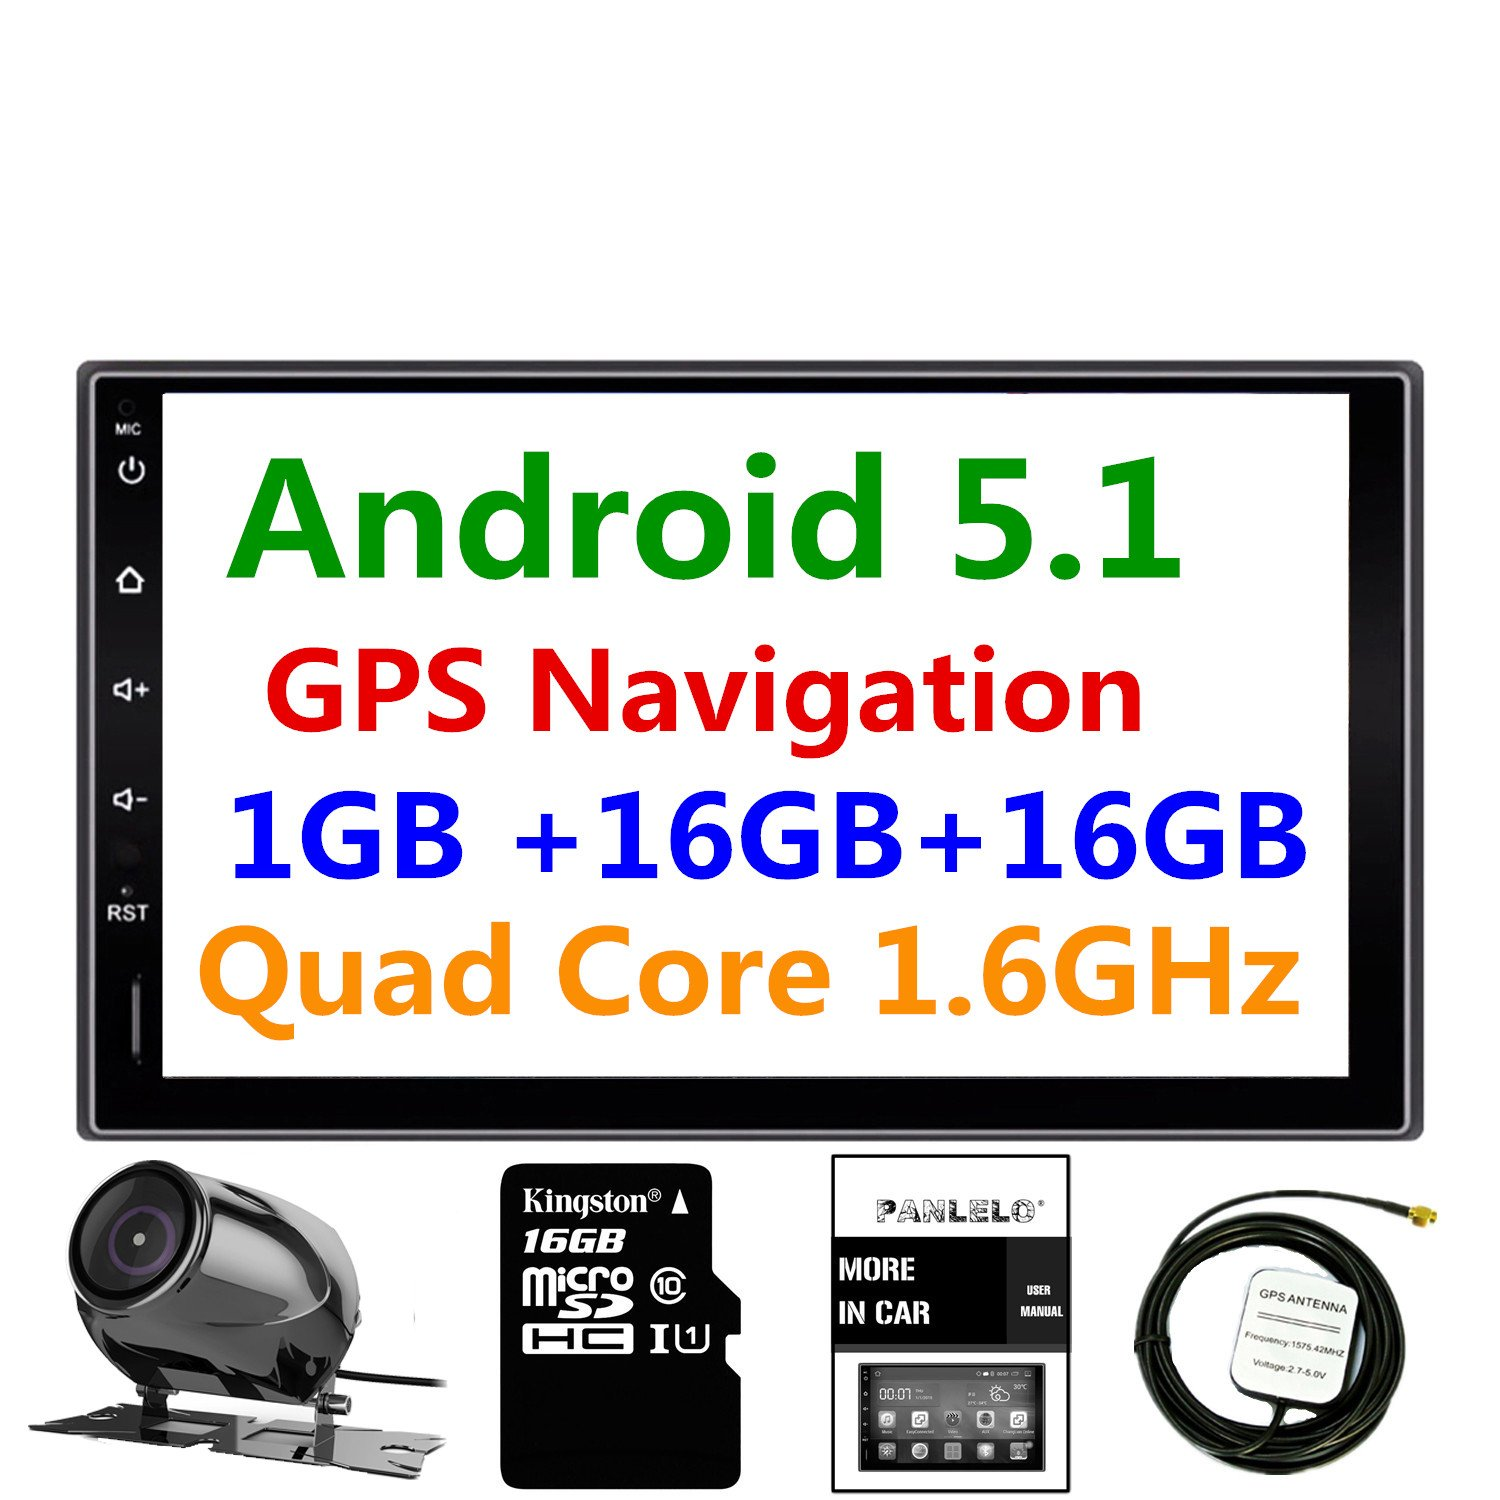 710Fwq6gxkL._SL1500_ amazon com panlelo pa09yz16, 7 inch double din car stereo android panlelo wiring diagram at creativeand.co